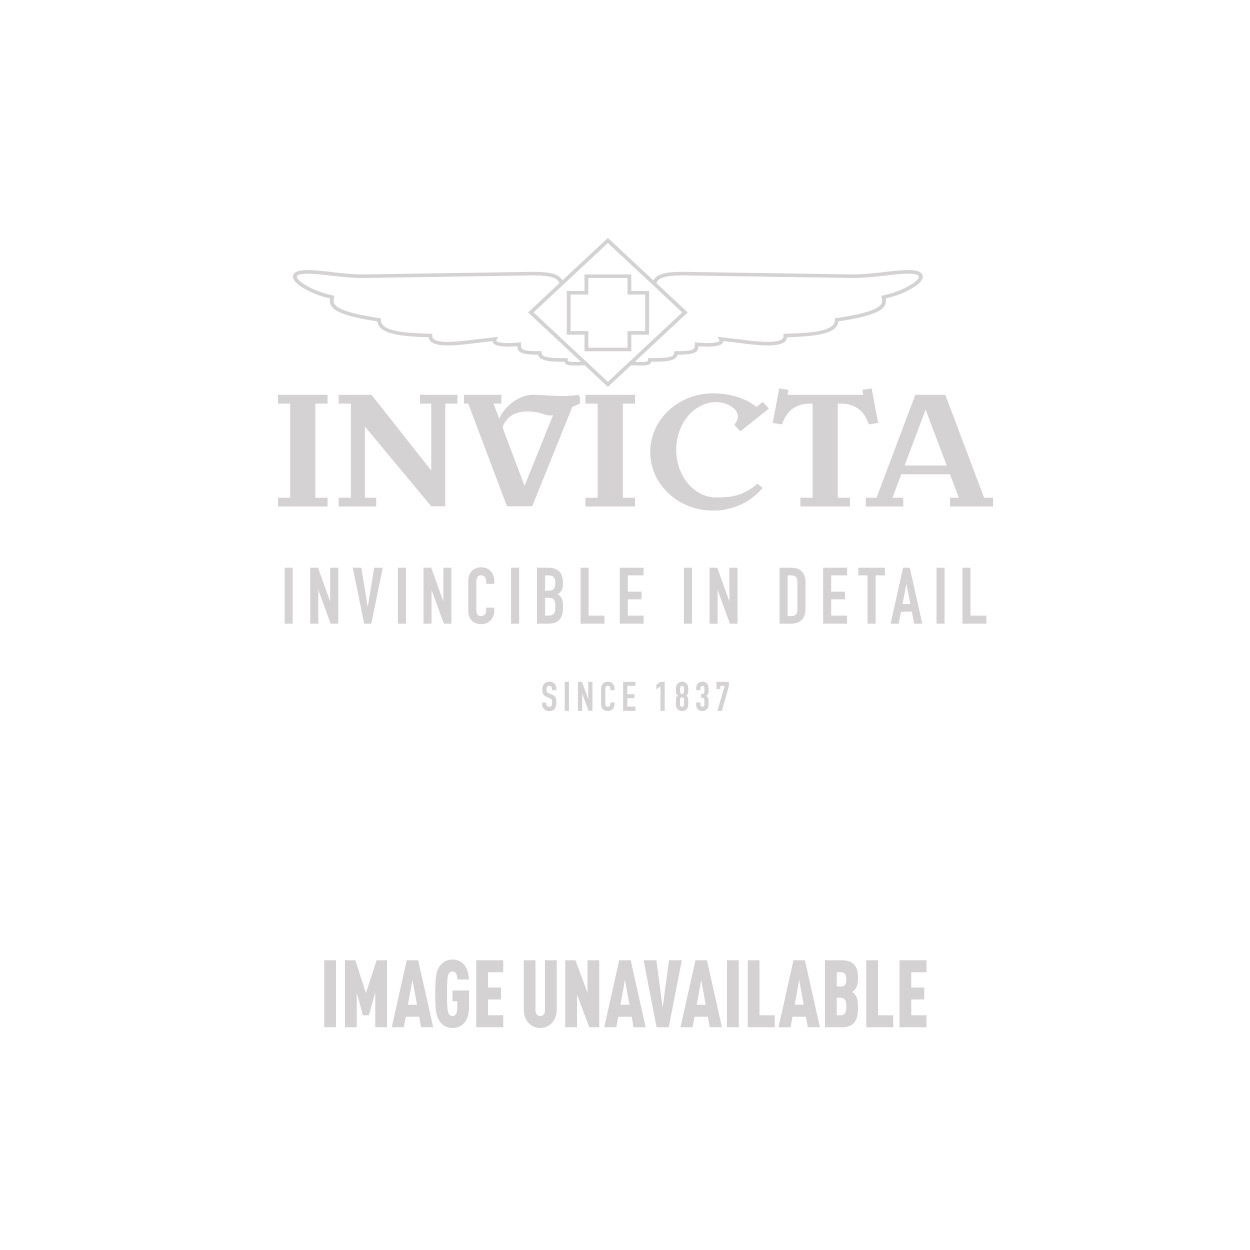 Invicta Subaqua NOMA II Swiss Made Quartz Watch - Stainless Steel case Stainless Steel band - Model 18216